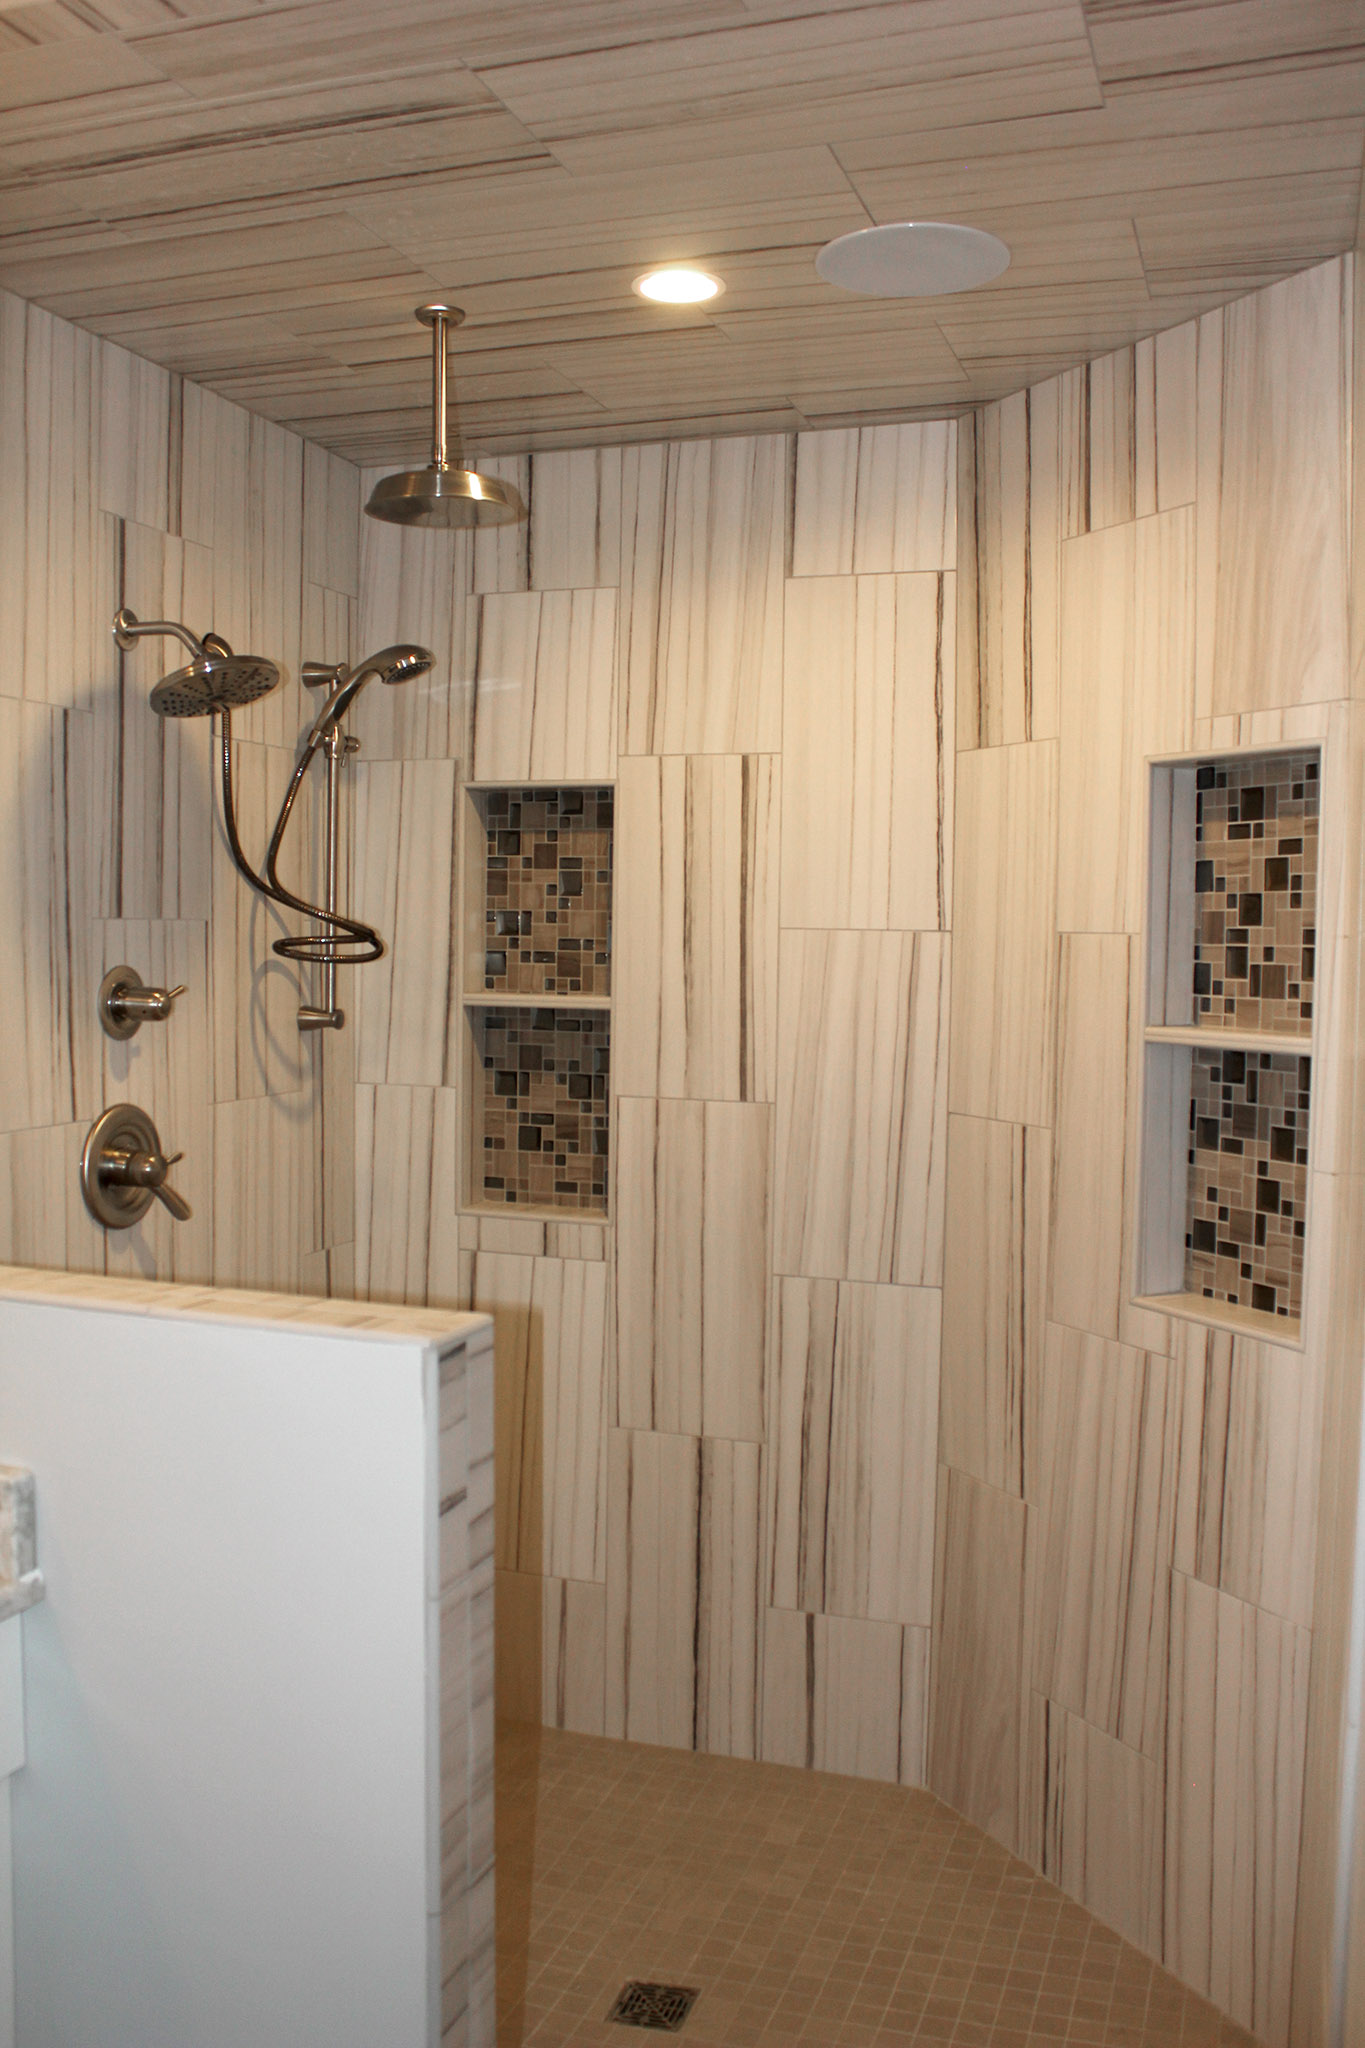 Spacious luxury door-less walk in ceramic tile shower with inset shelves and rain shower head